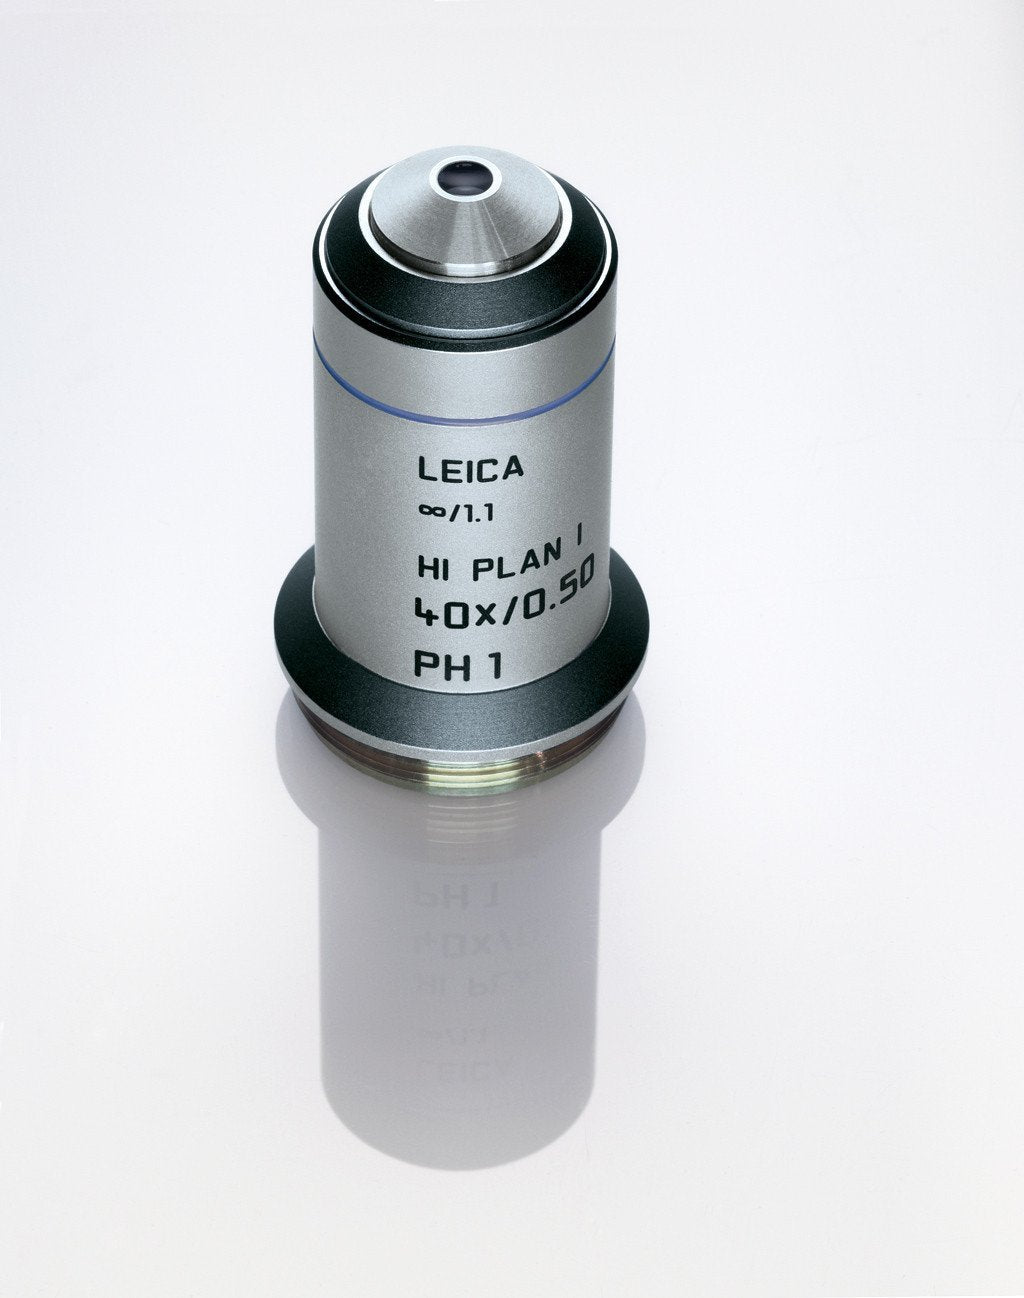 Leica HI PLAN I 40x/0.50 PH1 Microscope Objective